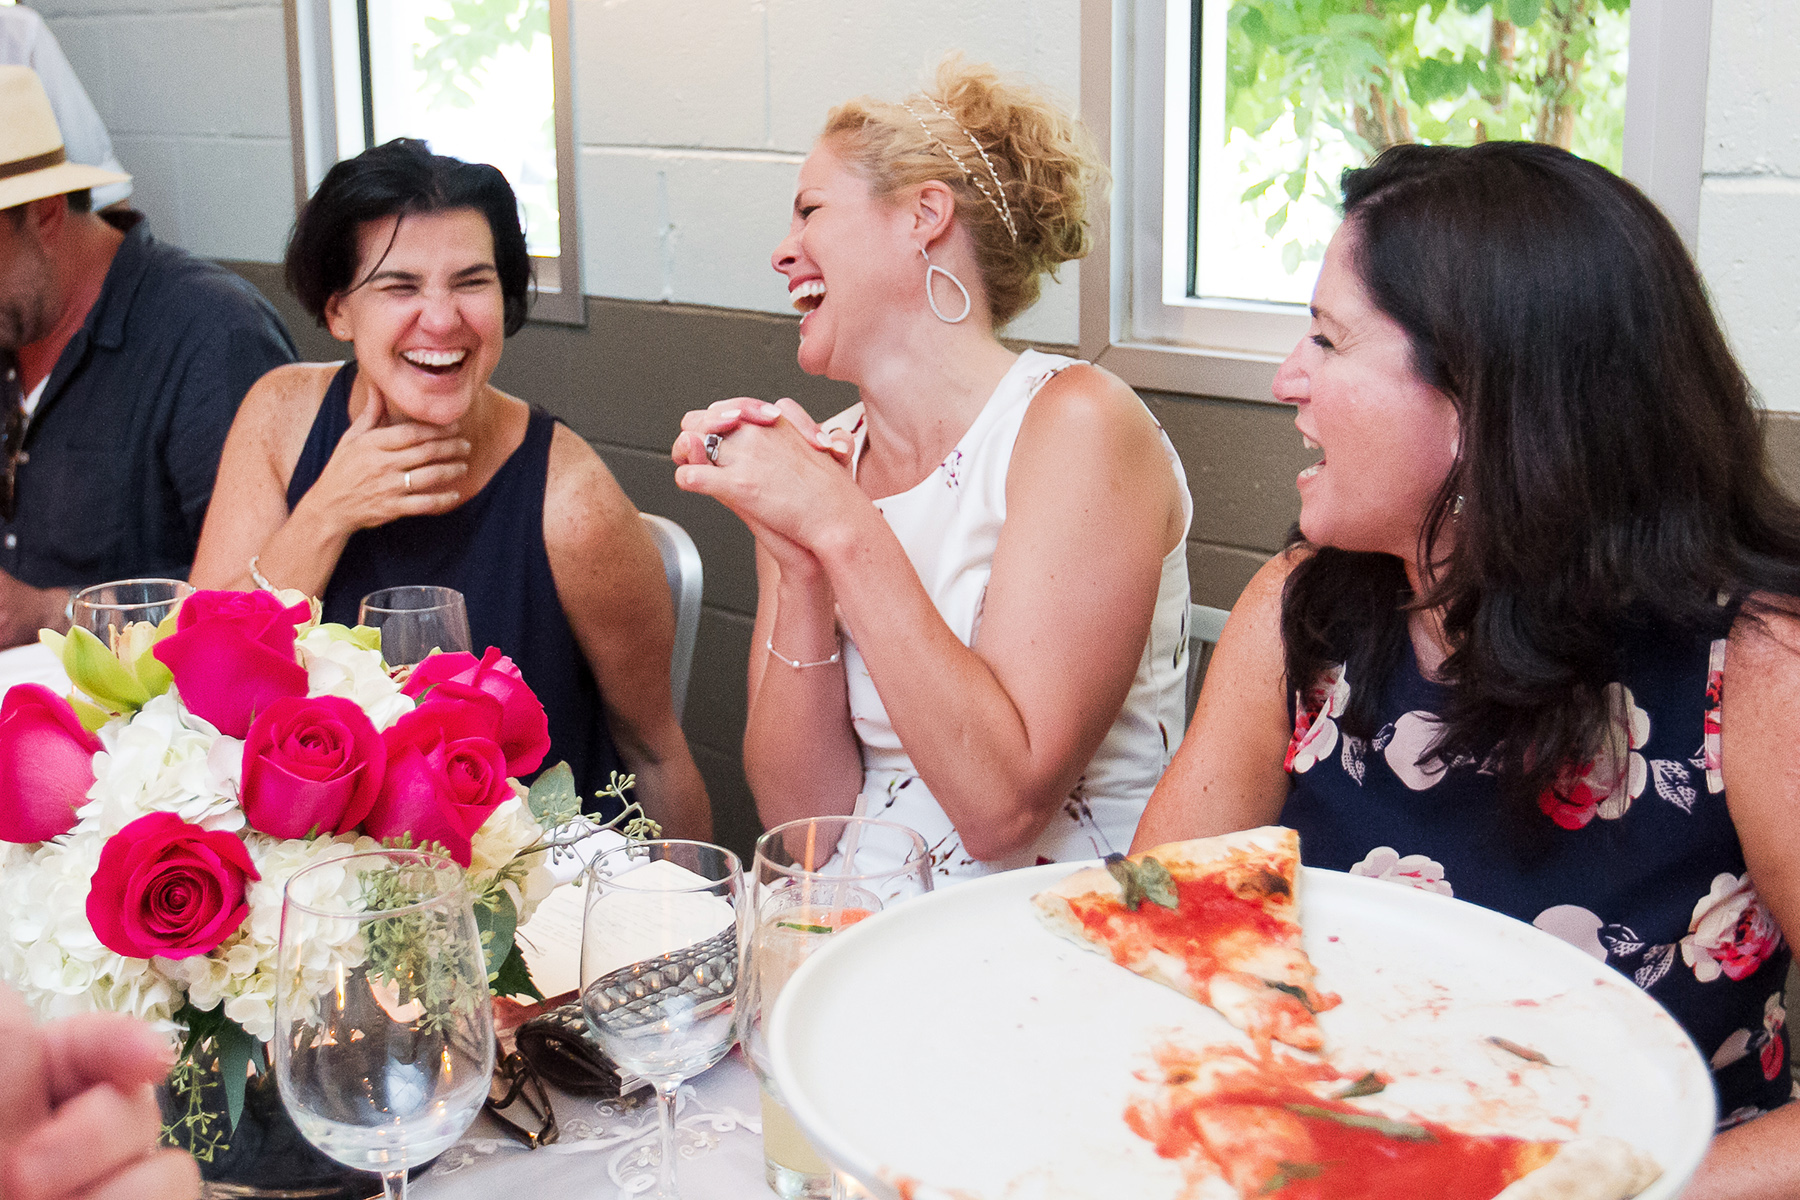 Floataway Cafe Restaurant Elopement Venue - Atlanta, GA | The maid of honor shares a laugh during dinner